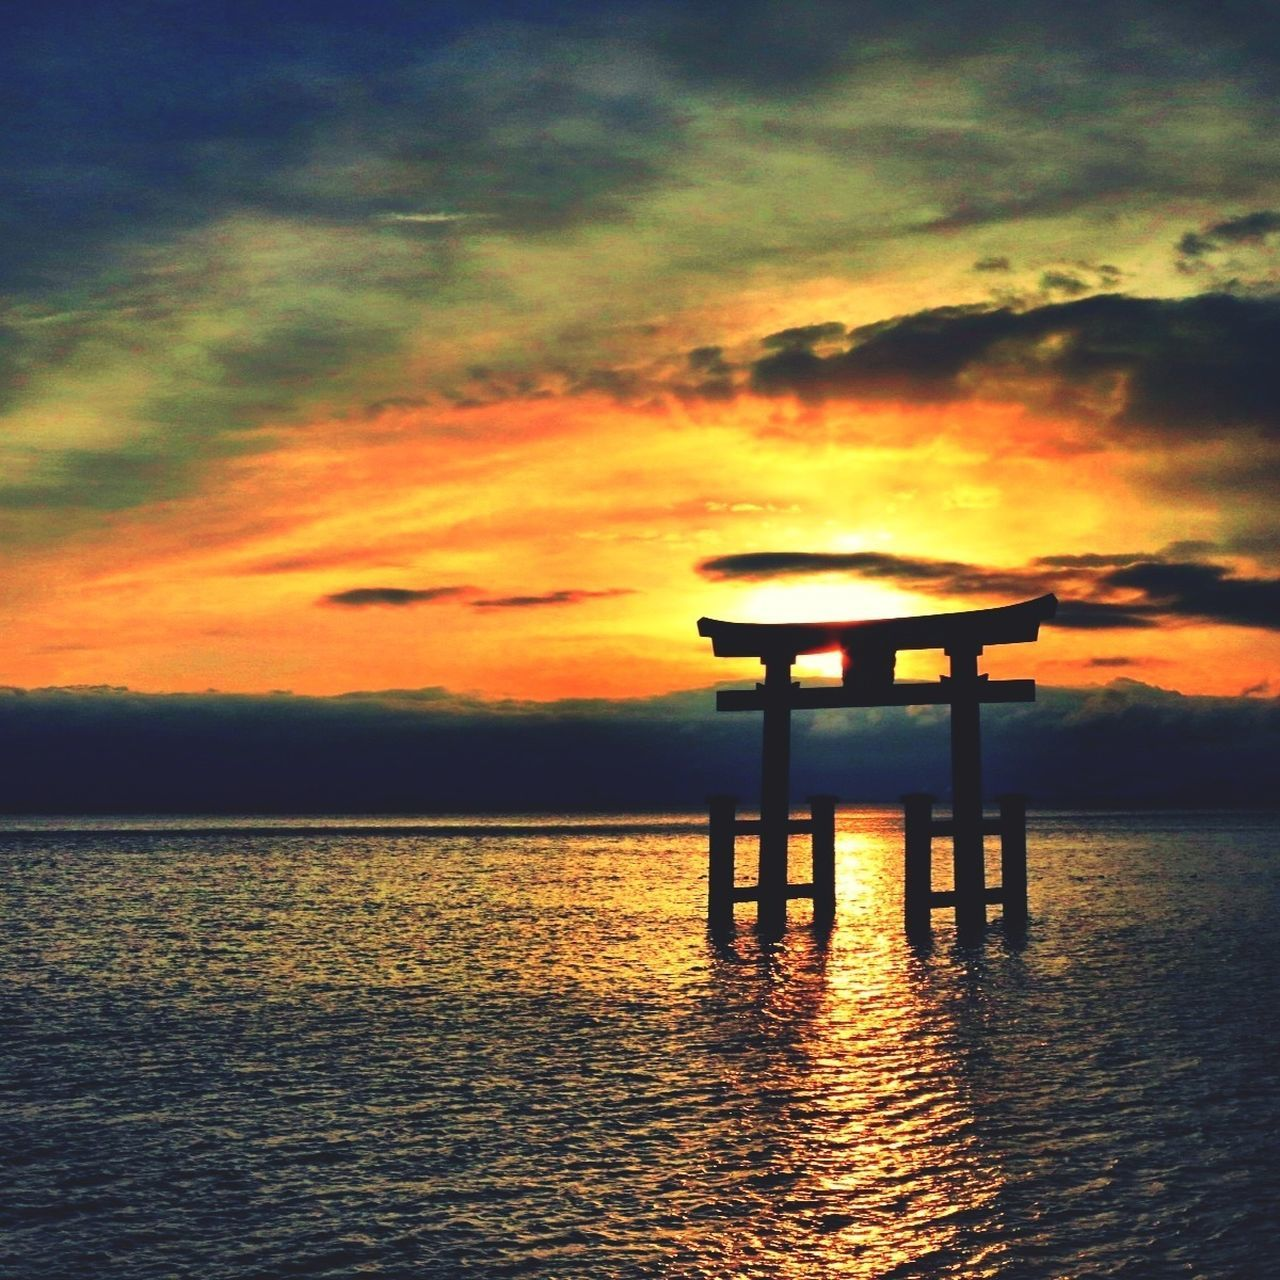 Japan Scenery EyeEm Best Shots - Sunsets + Sunrise Water - Collection EyeEm Best Shots